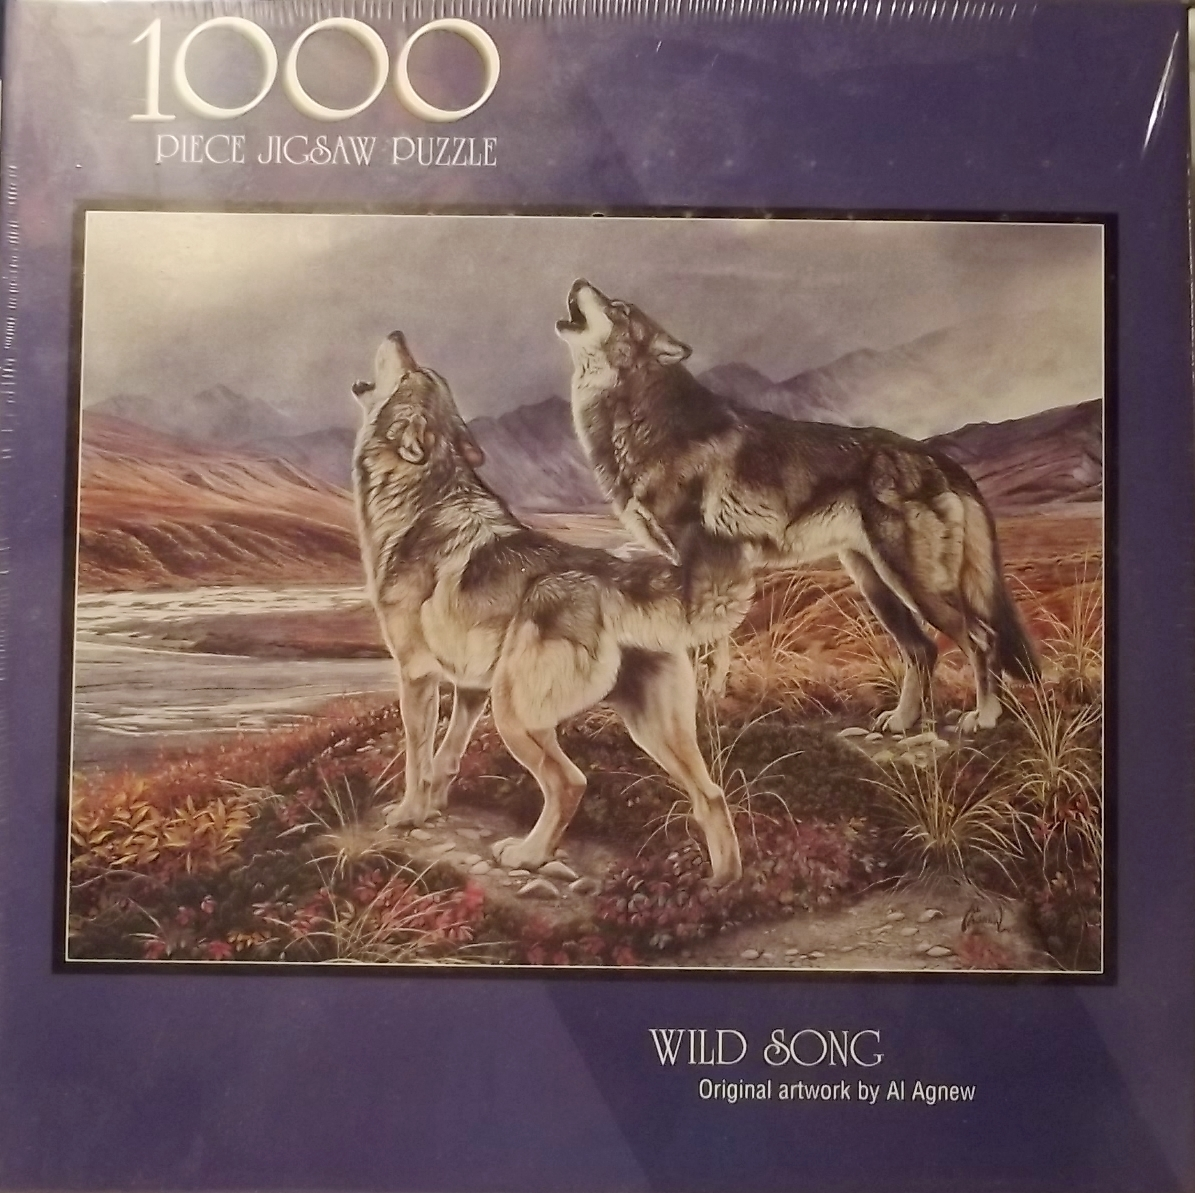 BITS AND PIECES WILD SONG PUZZLE 1000 PIECE JIGSAW PUZZLE by AL